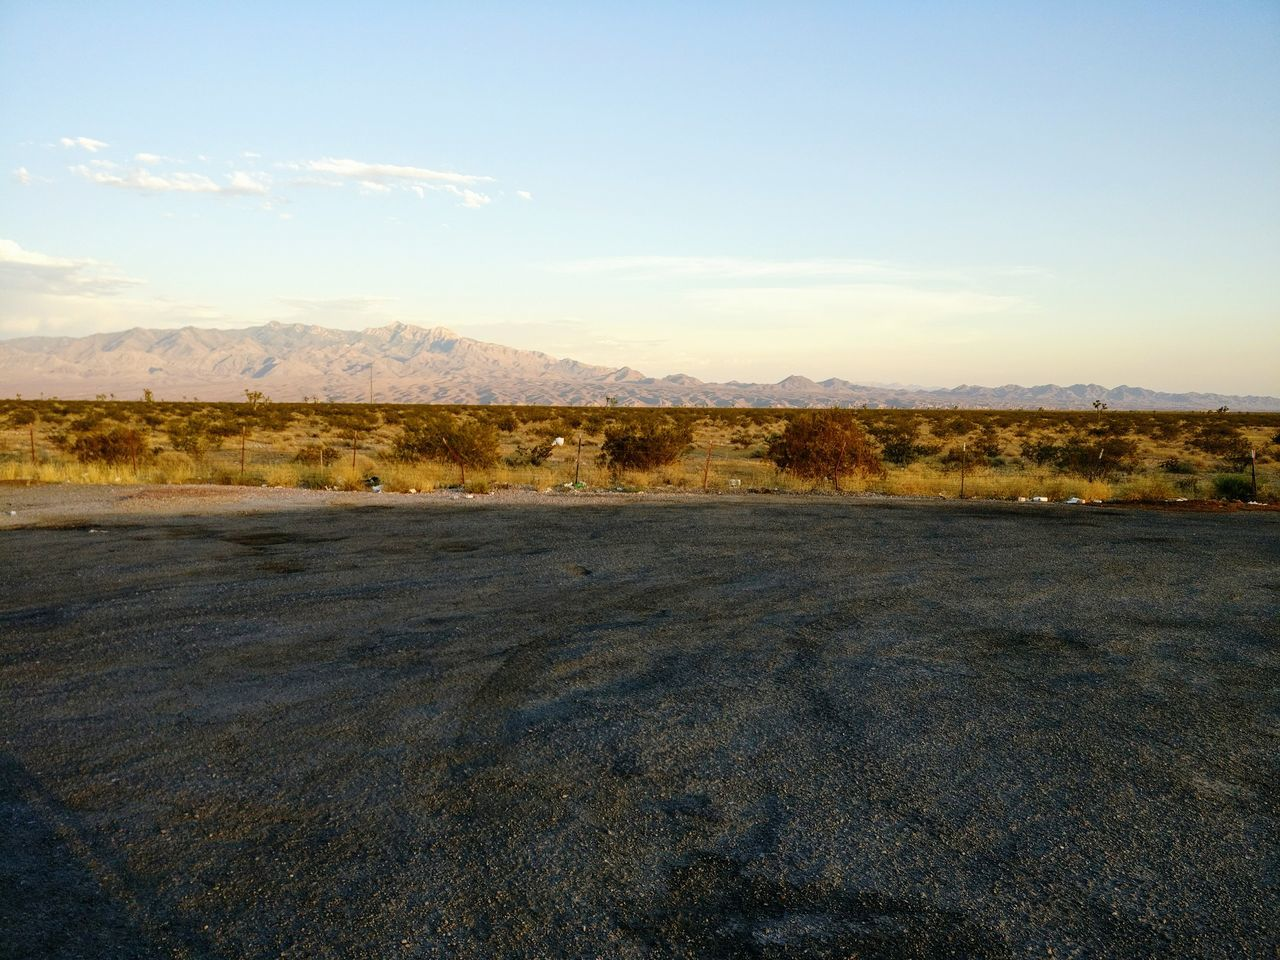 Landscape No People Sky Outdoors Day Arid Climate Nature